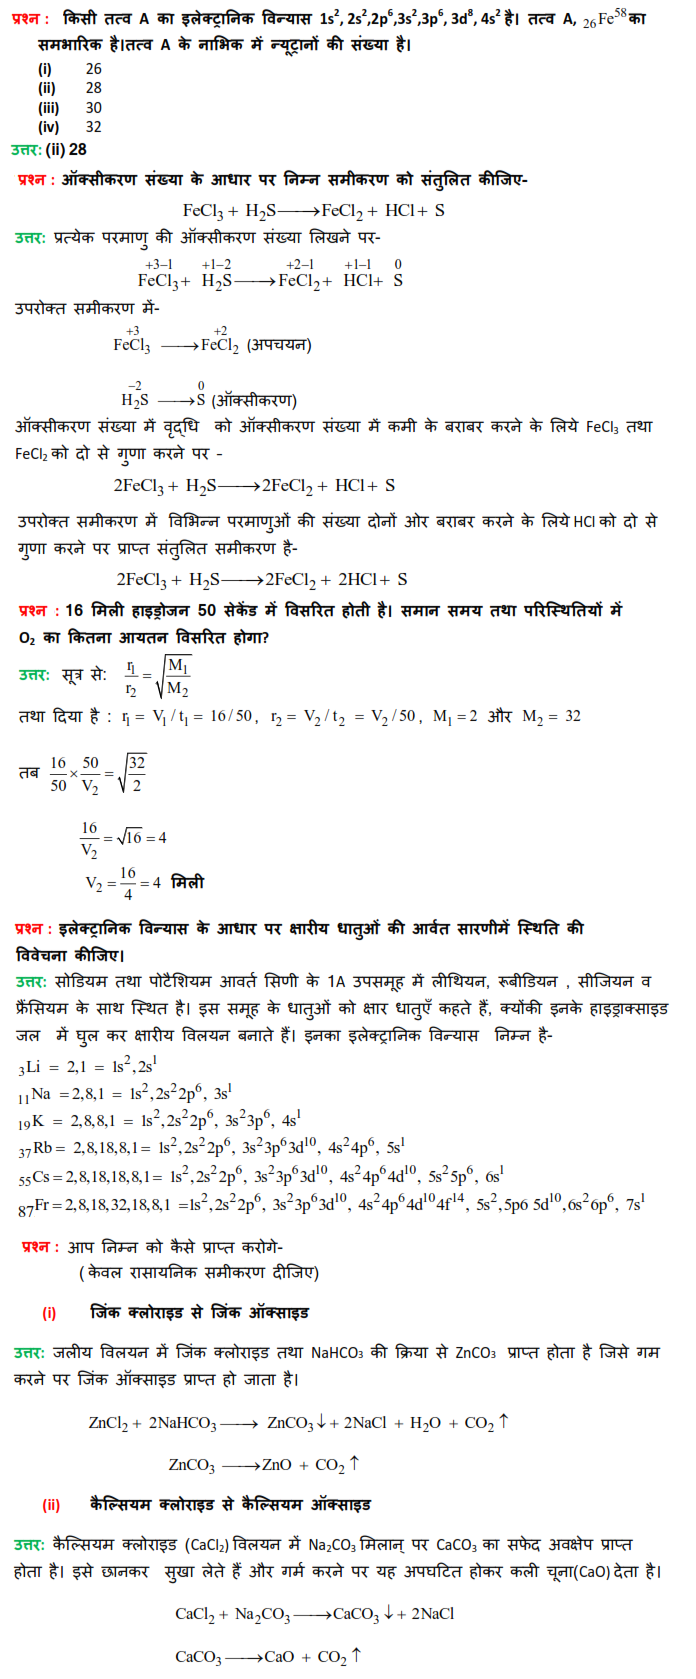 2012 question paper solution wbjee pdf with